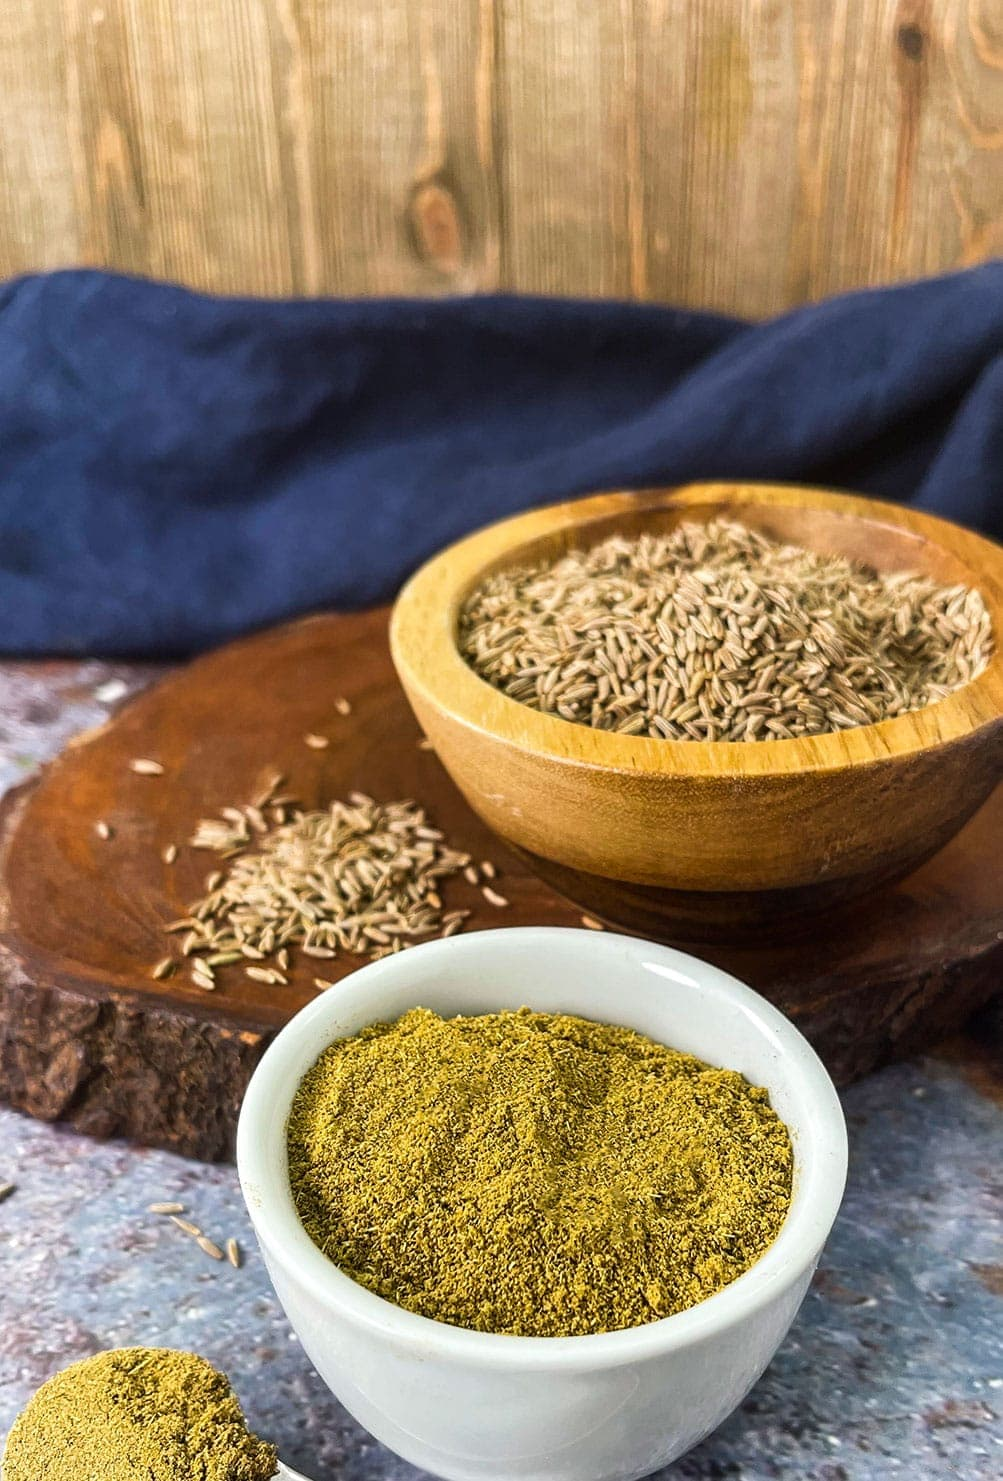 dried cumin in a wooden bowl with coriander powder in a white bowl